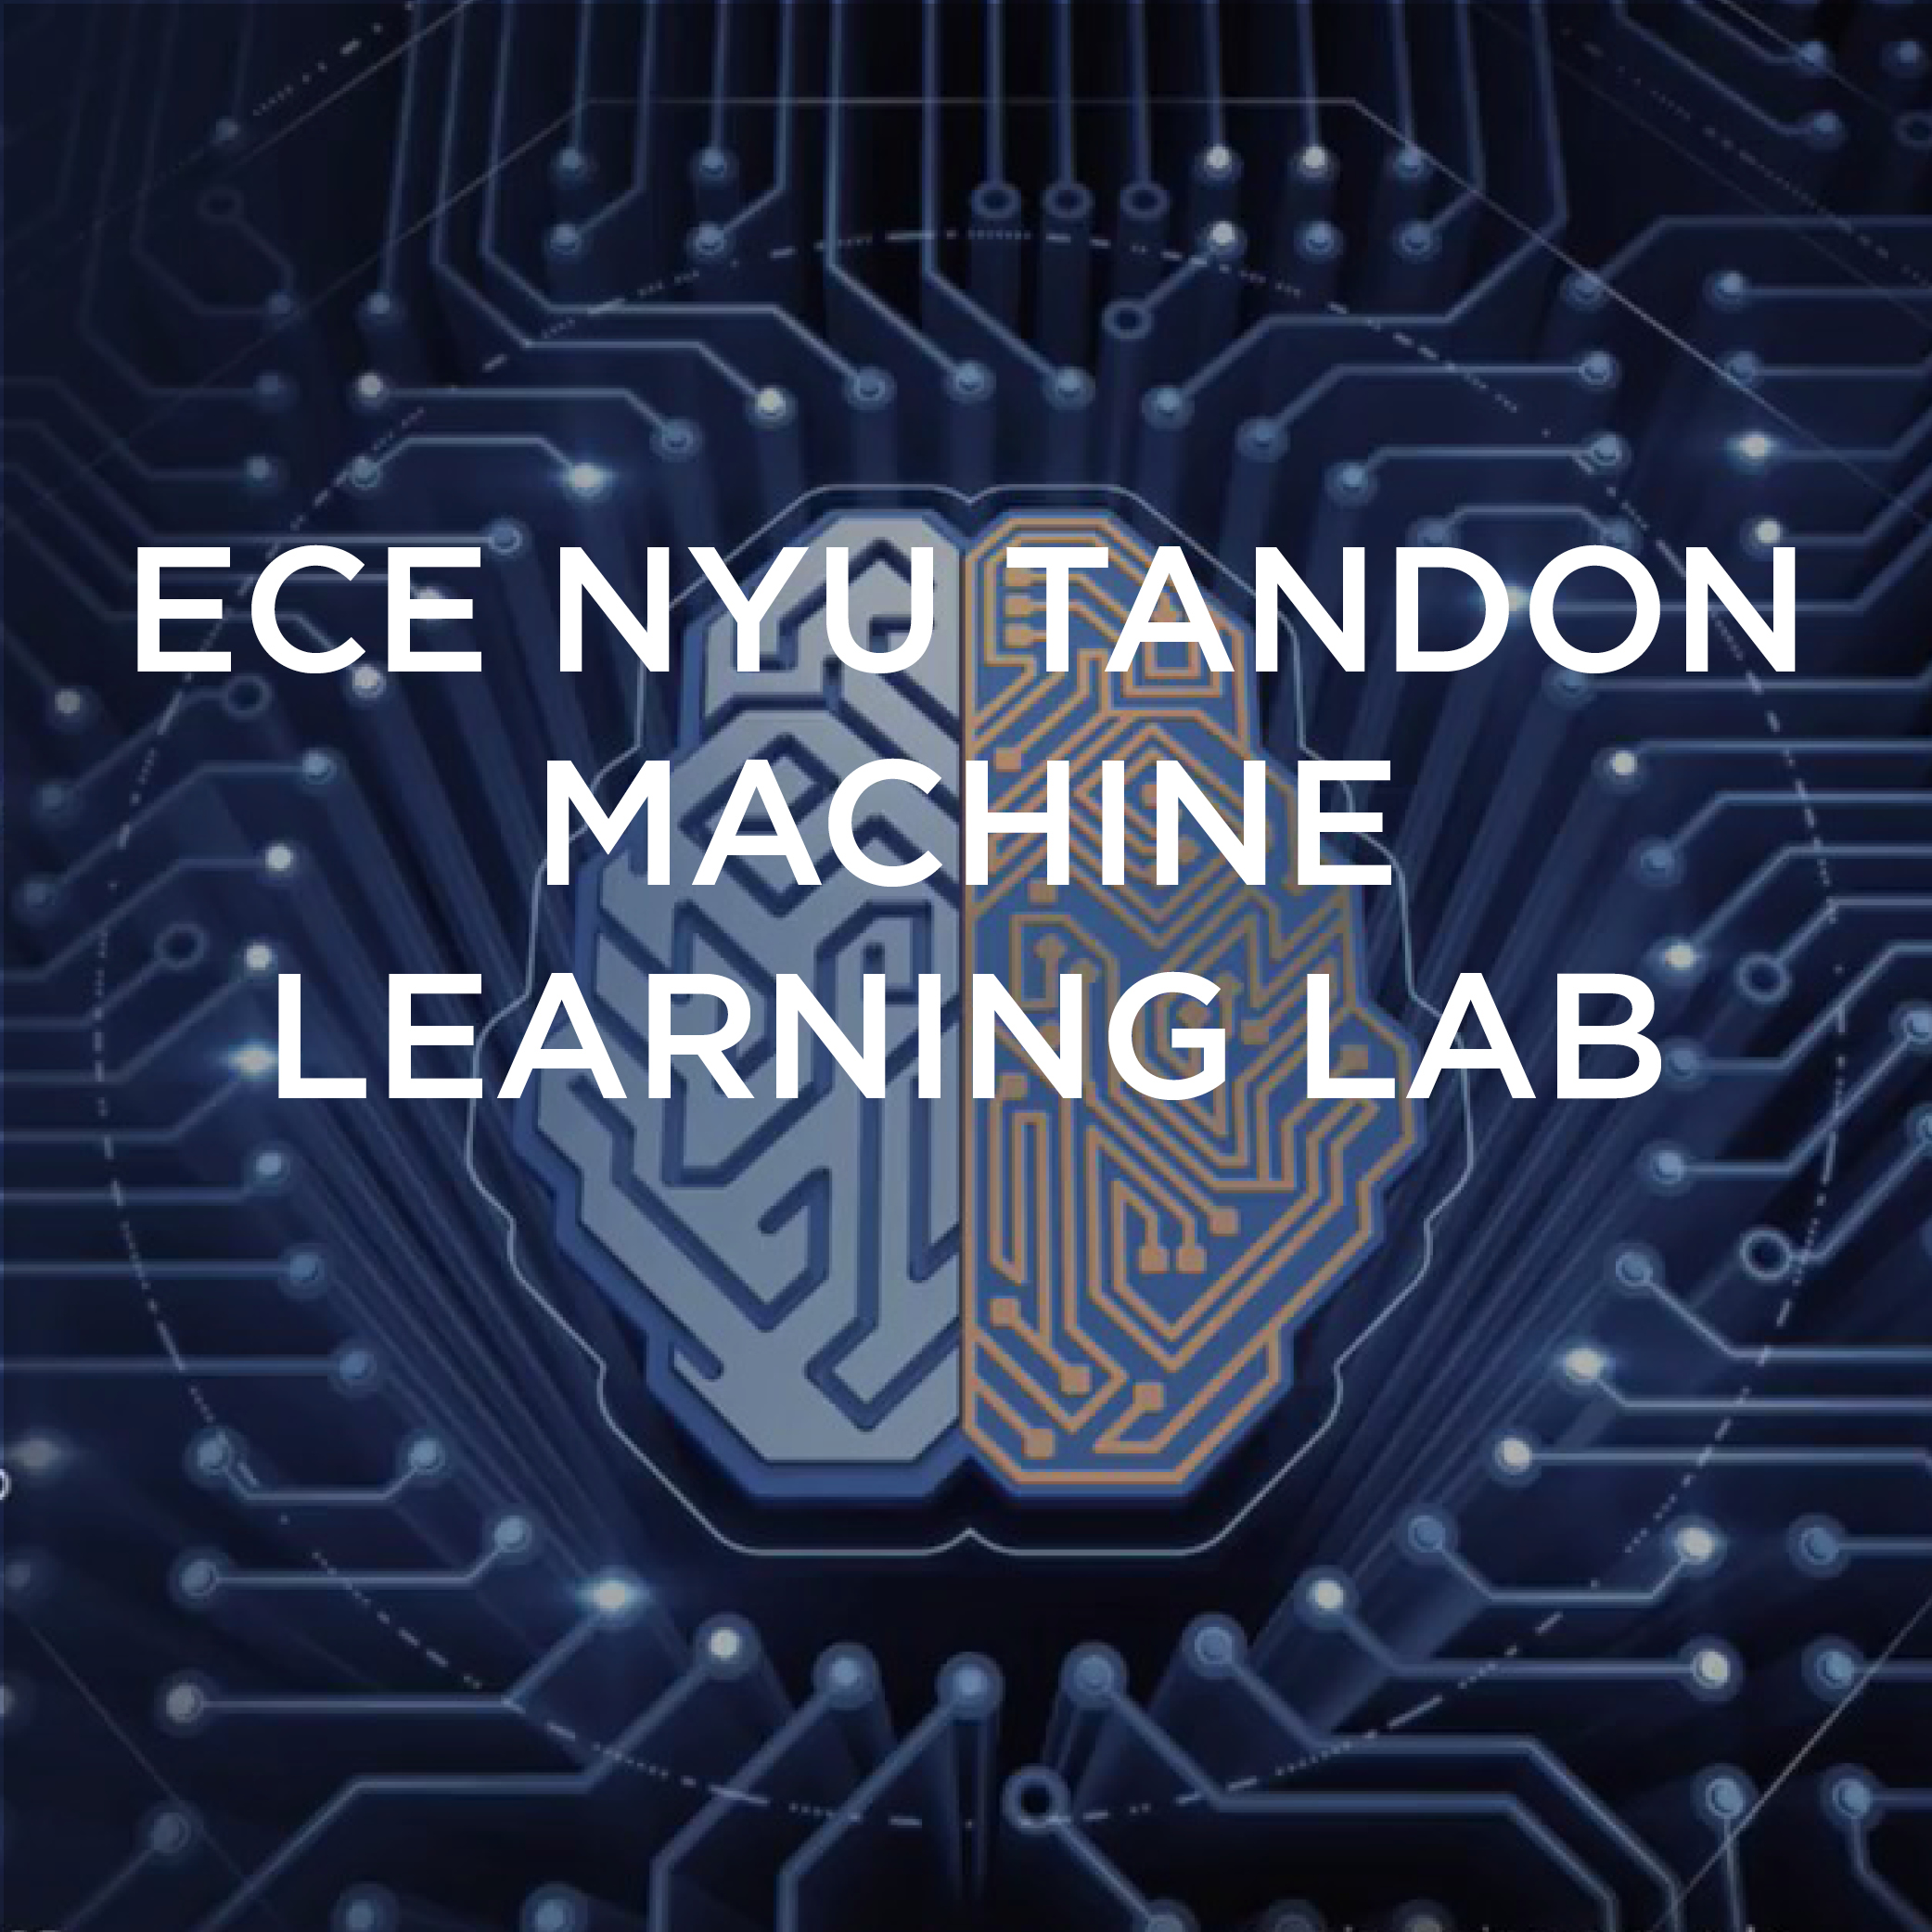 ECE NYU Tandon Machine Learning Lab